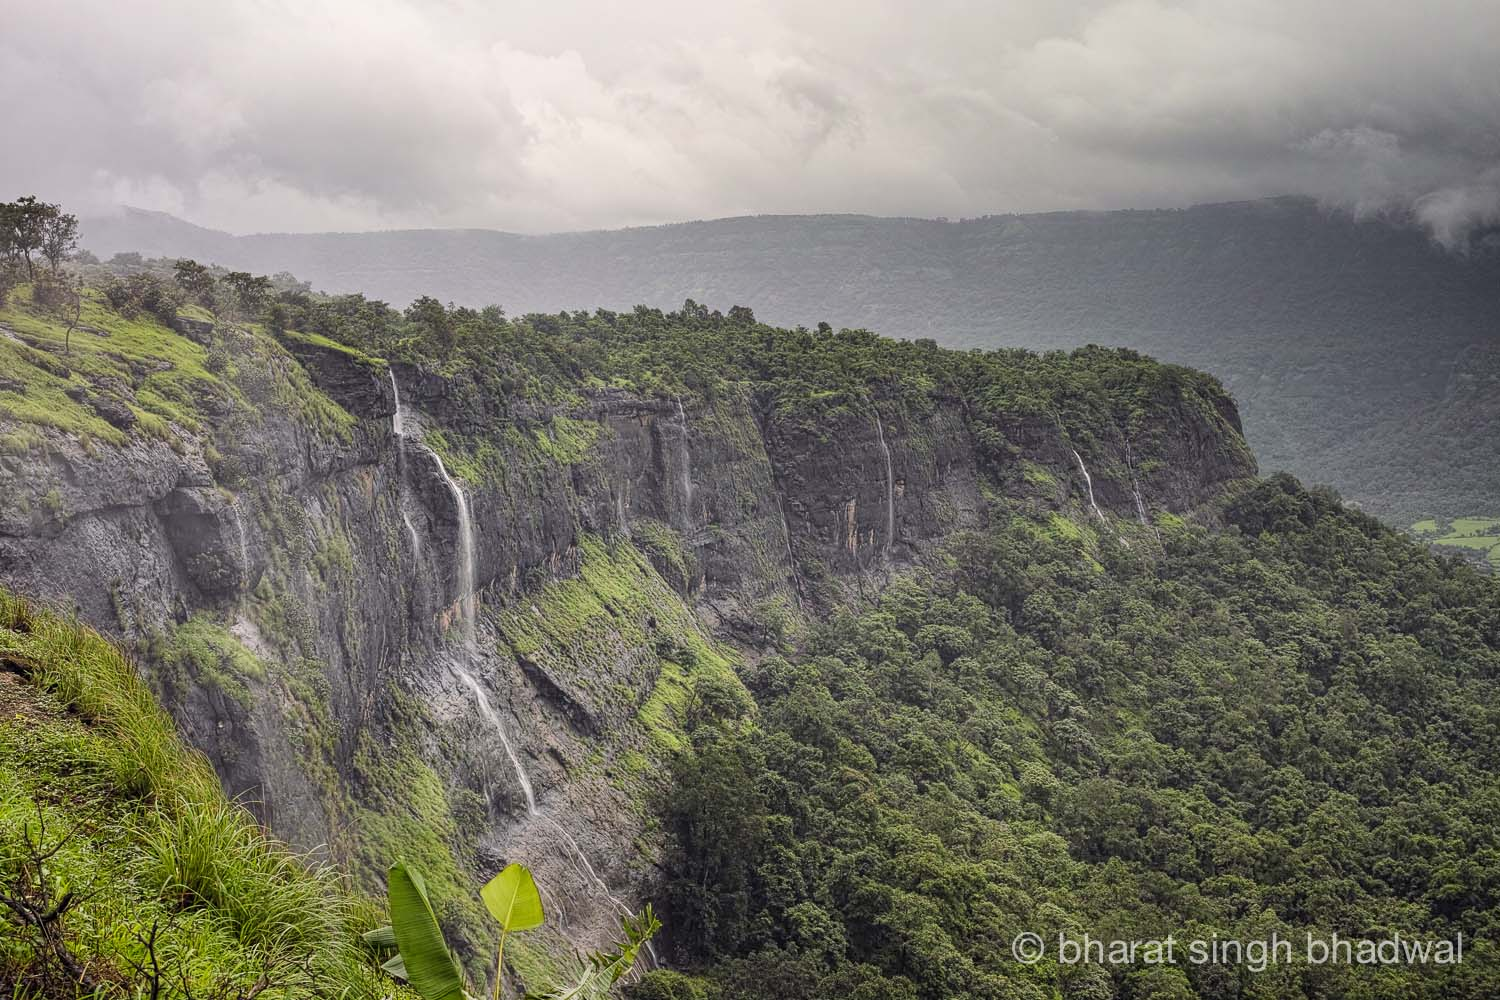 Peth plateau during monsoons